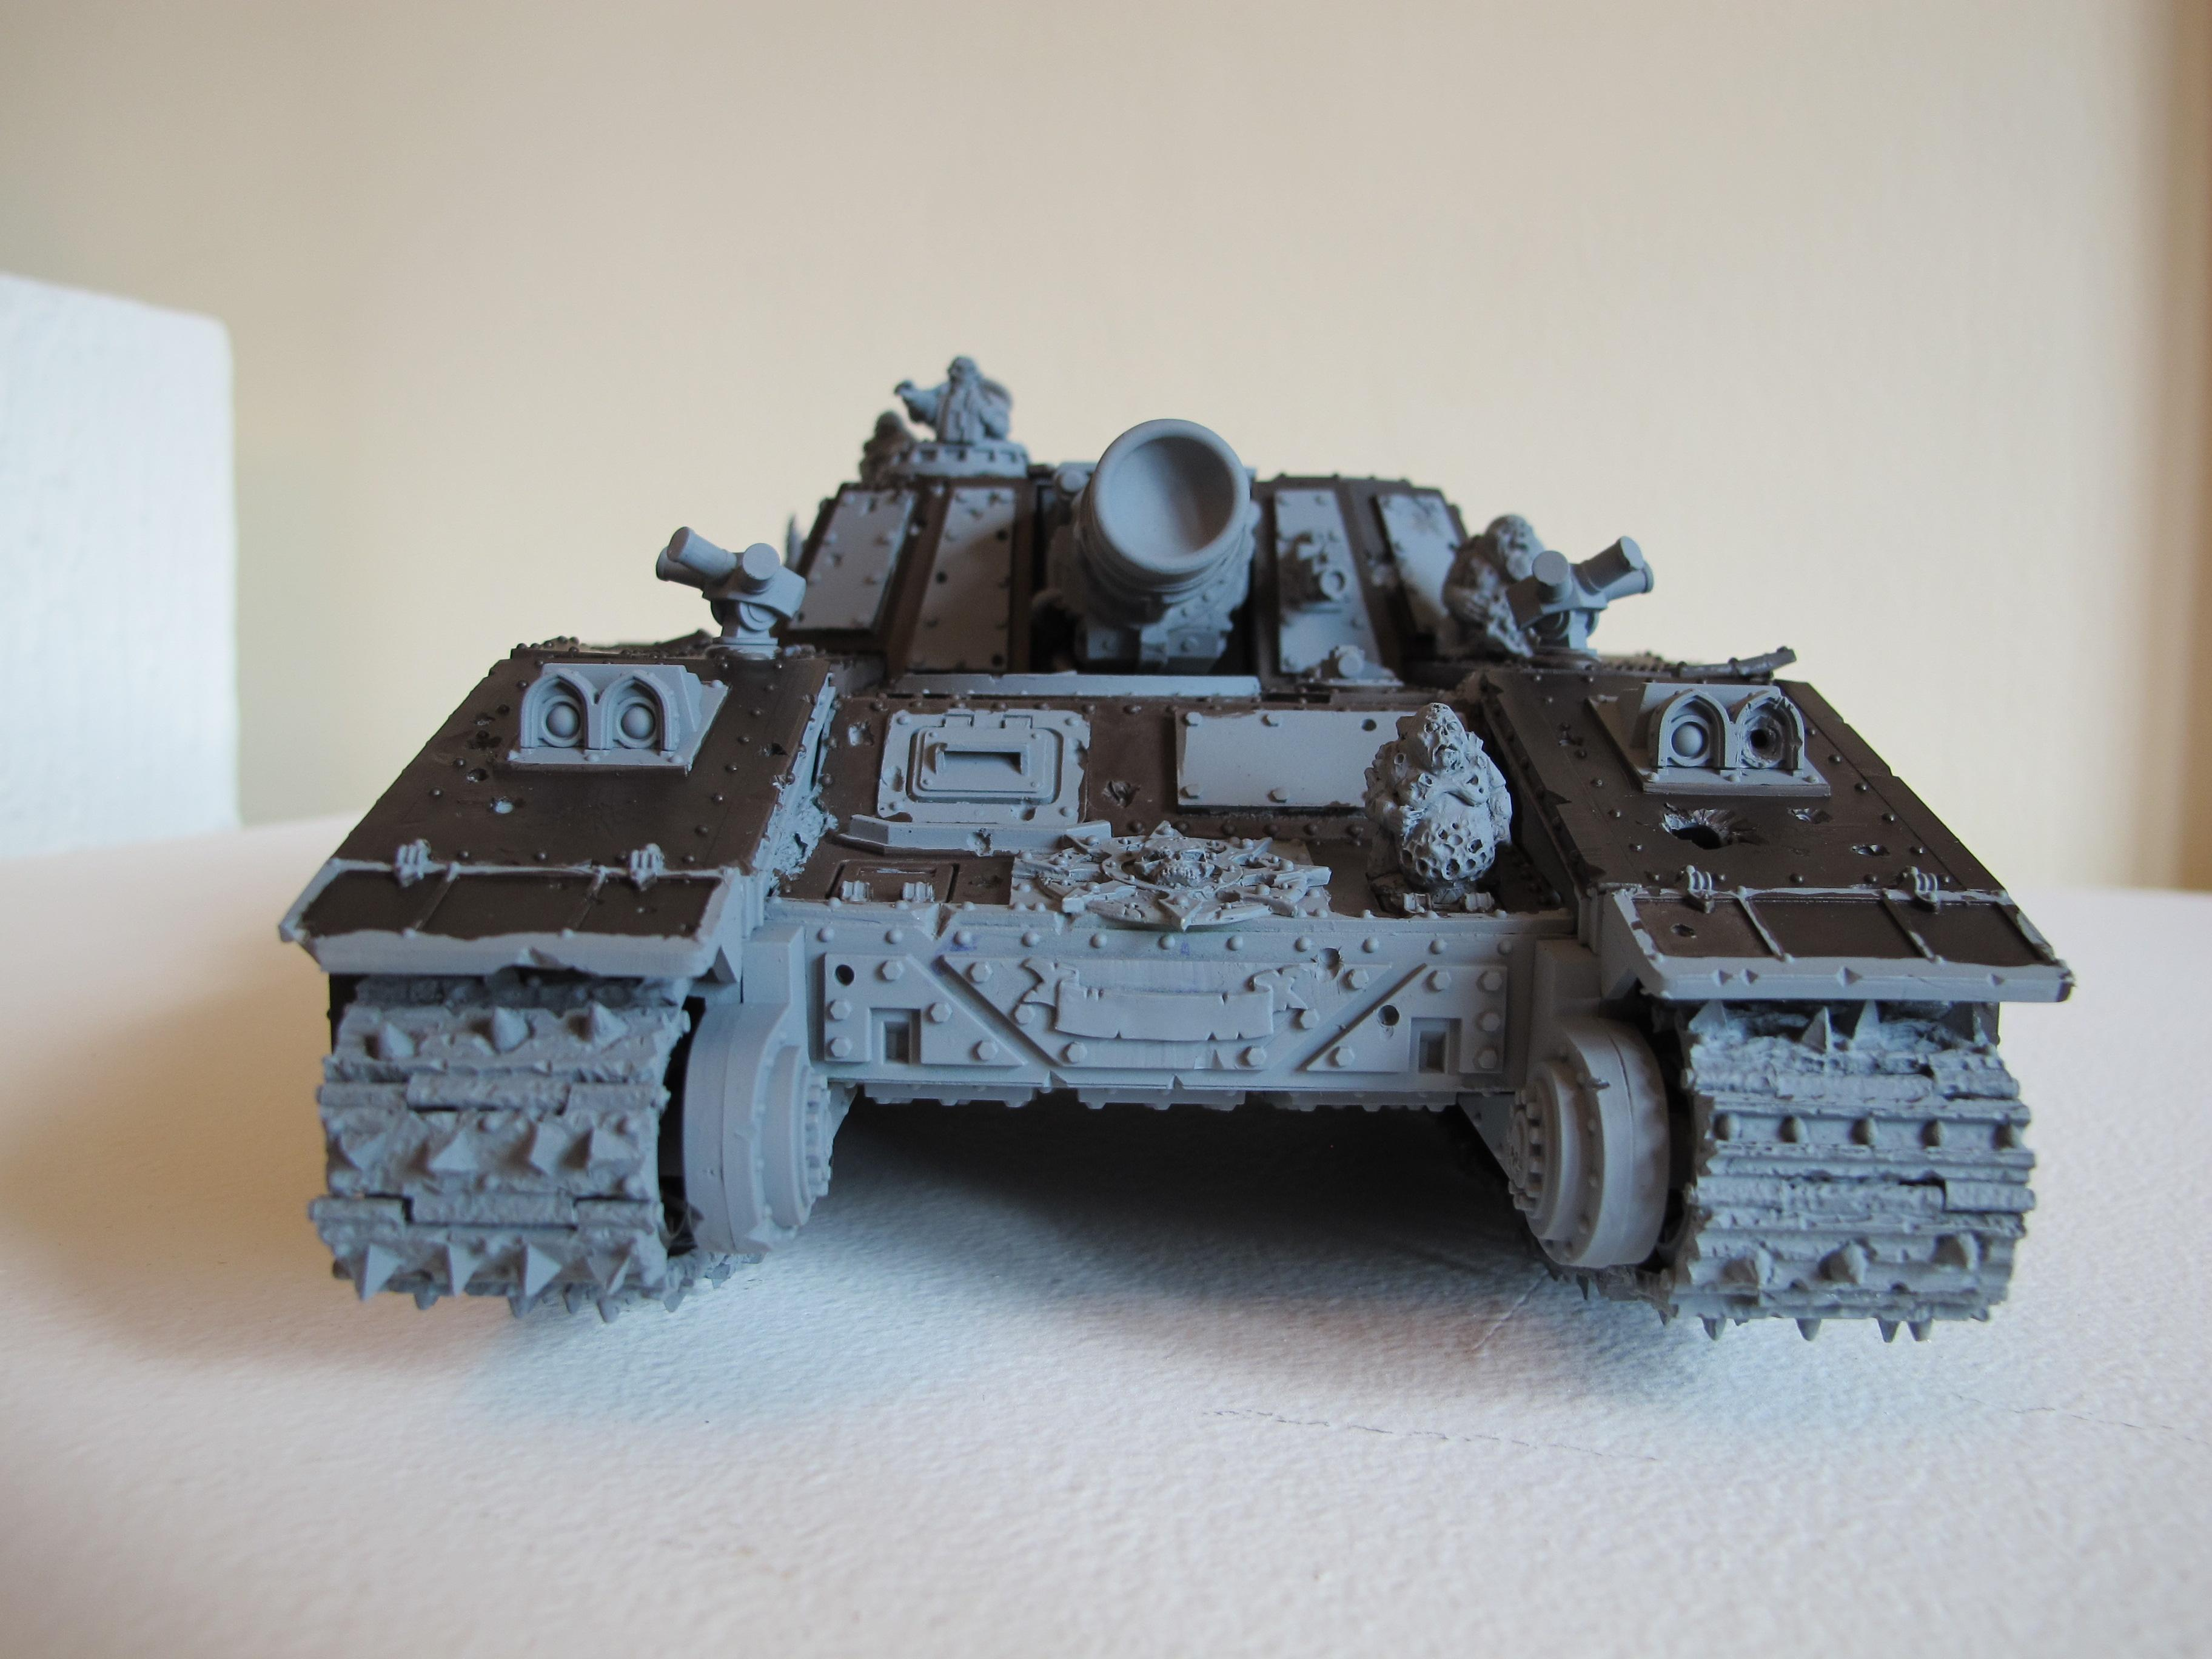 Apocalypse, Chaos, Chaos Space Marines, Death Guard, Decay, Forge World, Heretic, Imperial Guard, Lords Of Decay, Plague, Plague Marines, Rust, Storm Sword, Stormsword, Super-heavy, Tank, Traitor, Vehicle